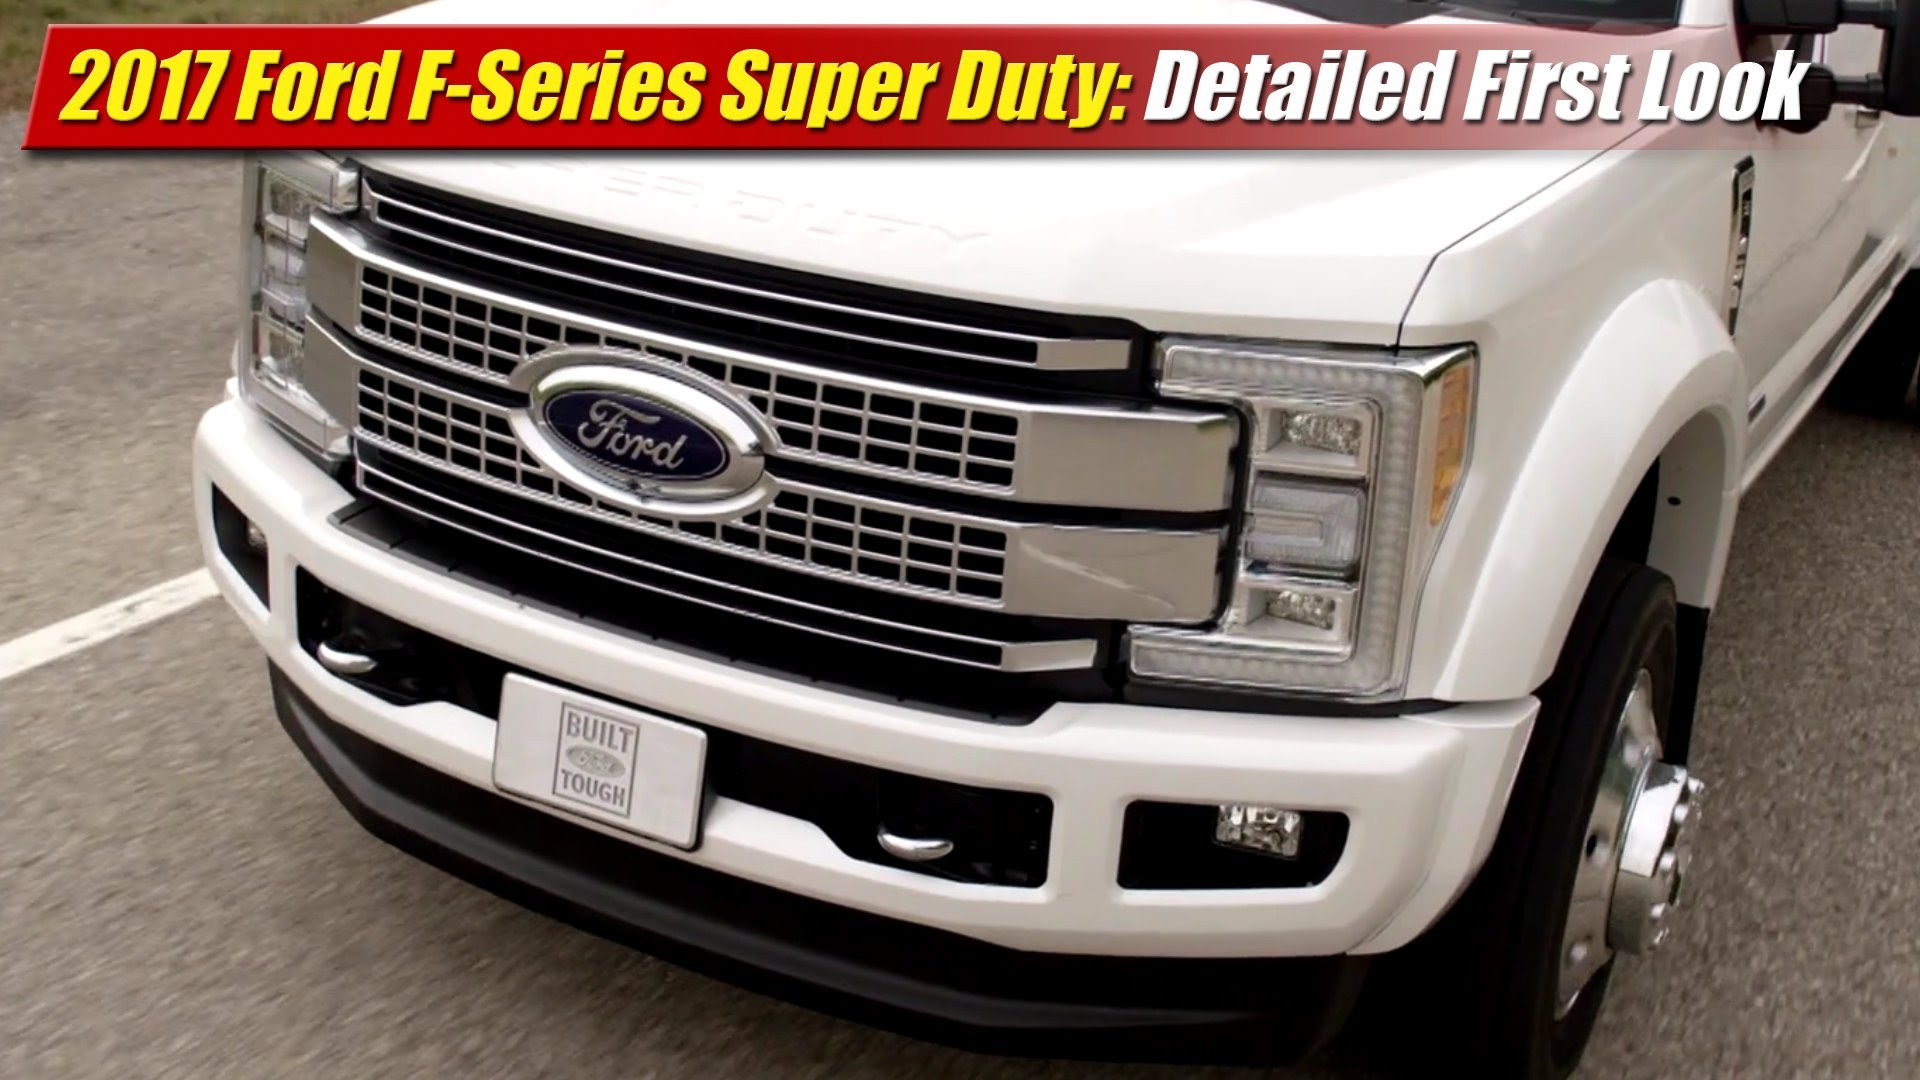 detailed first look 2017 ford f series super duty. Black Bedroom Furniture Sets. Home Design Ideas